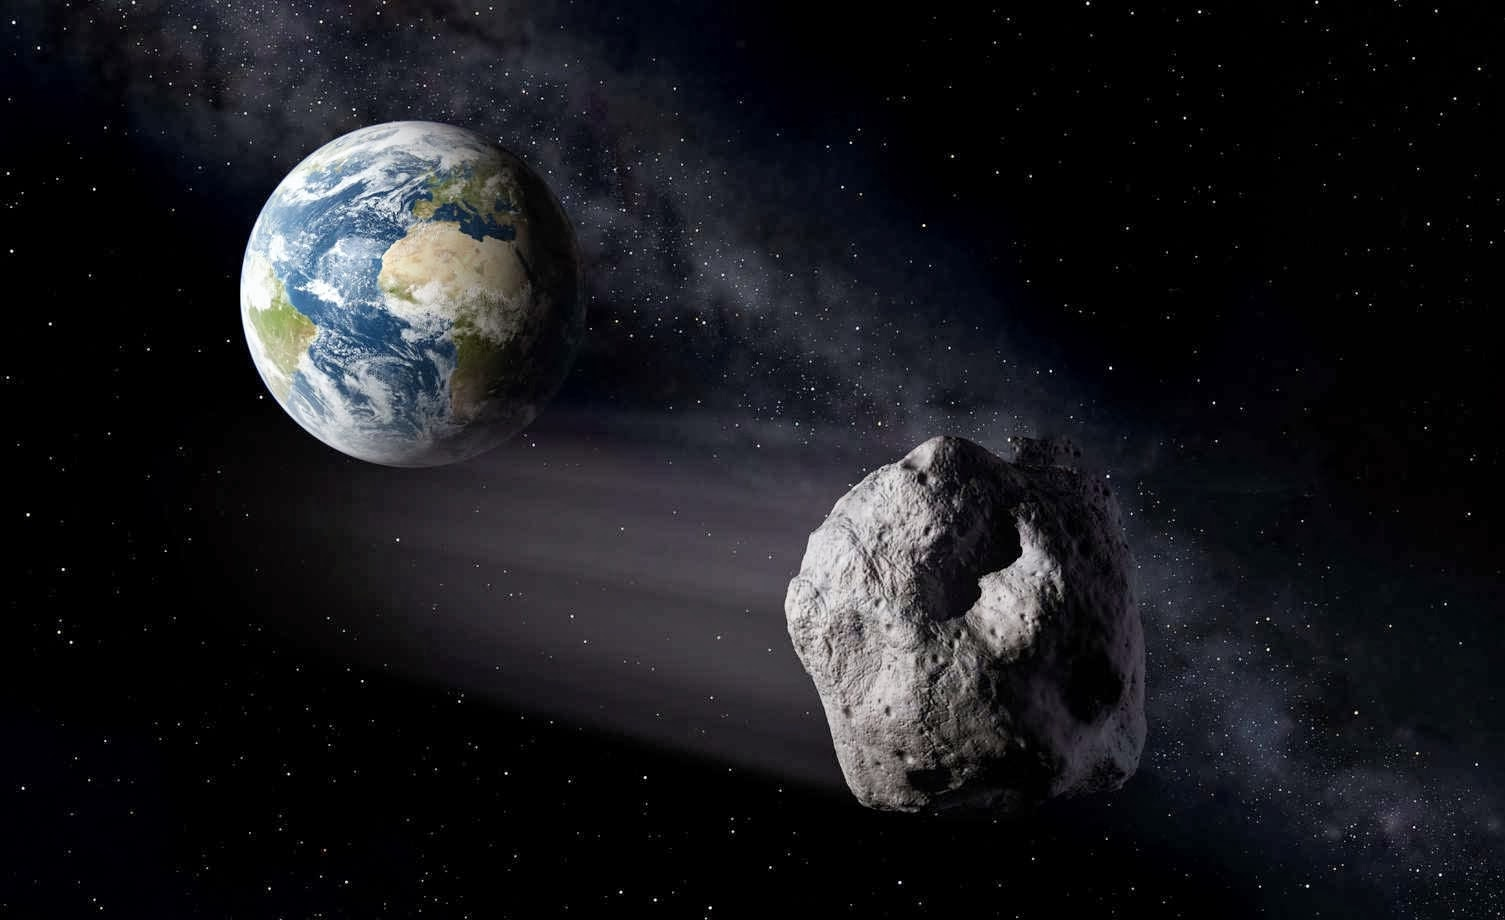 Artist's impression of a Near-Earth Asteroid passing by Earth. - Image Credit: ESA